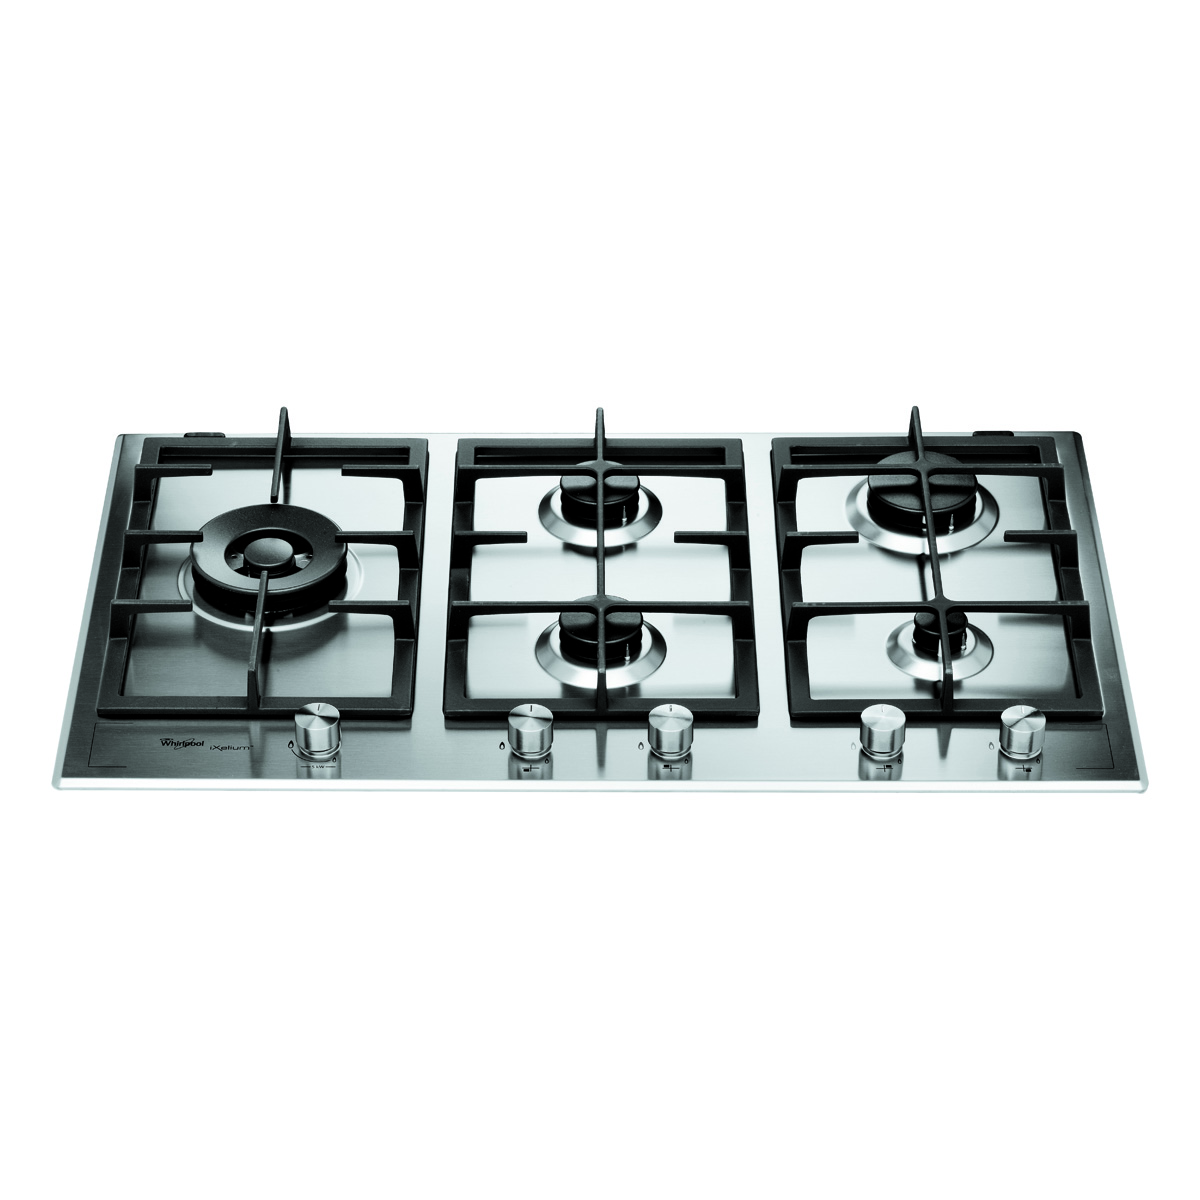 Kitchen Hob Whirlpool Norway ~ Whirlpool gmf ixl mm built in gas hob with